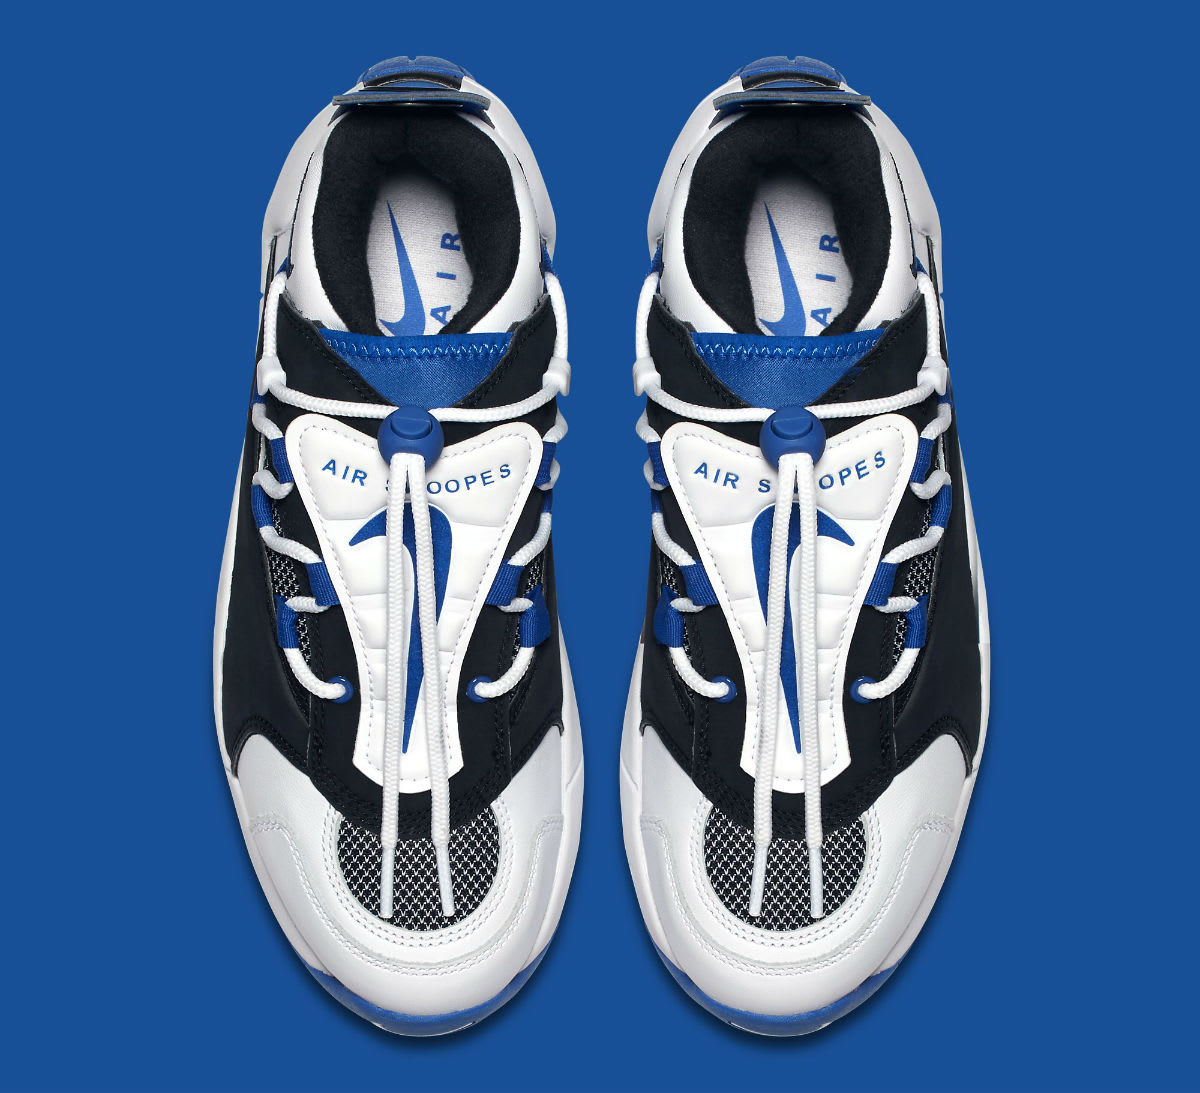 Nike Air Swoopes 2 II White Blue Release Date 917592-101 Top